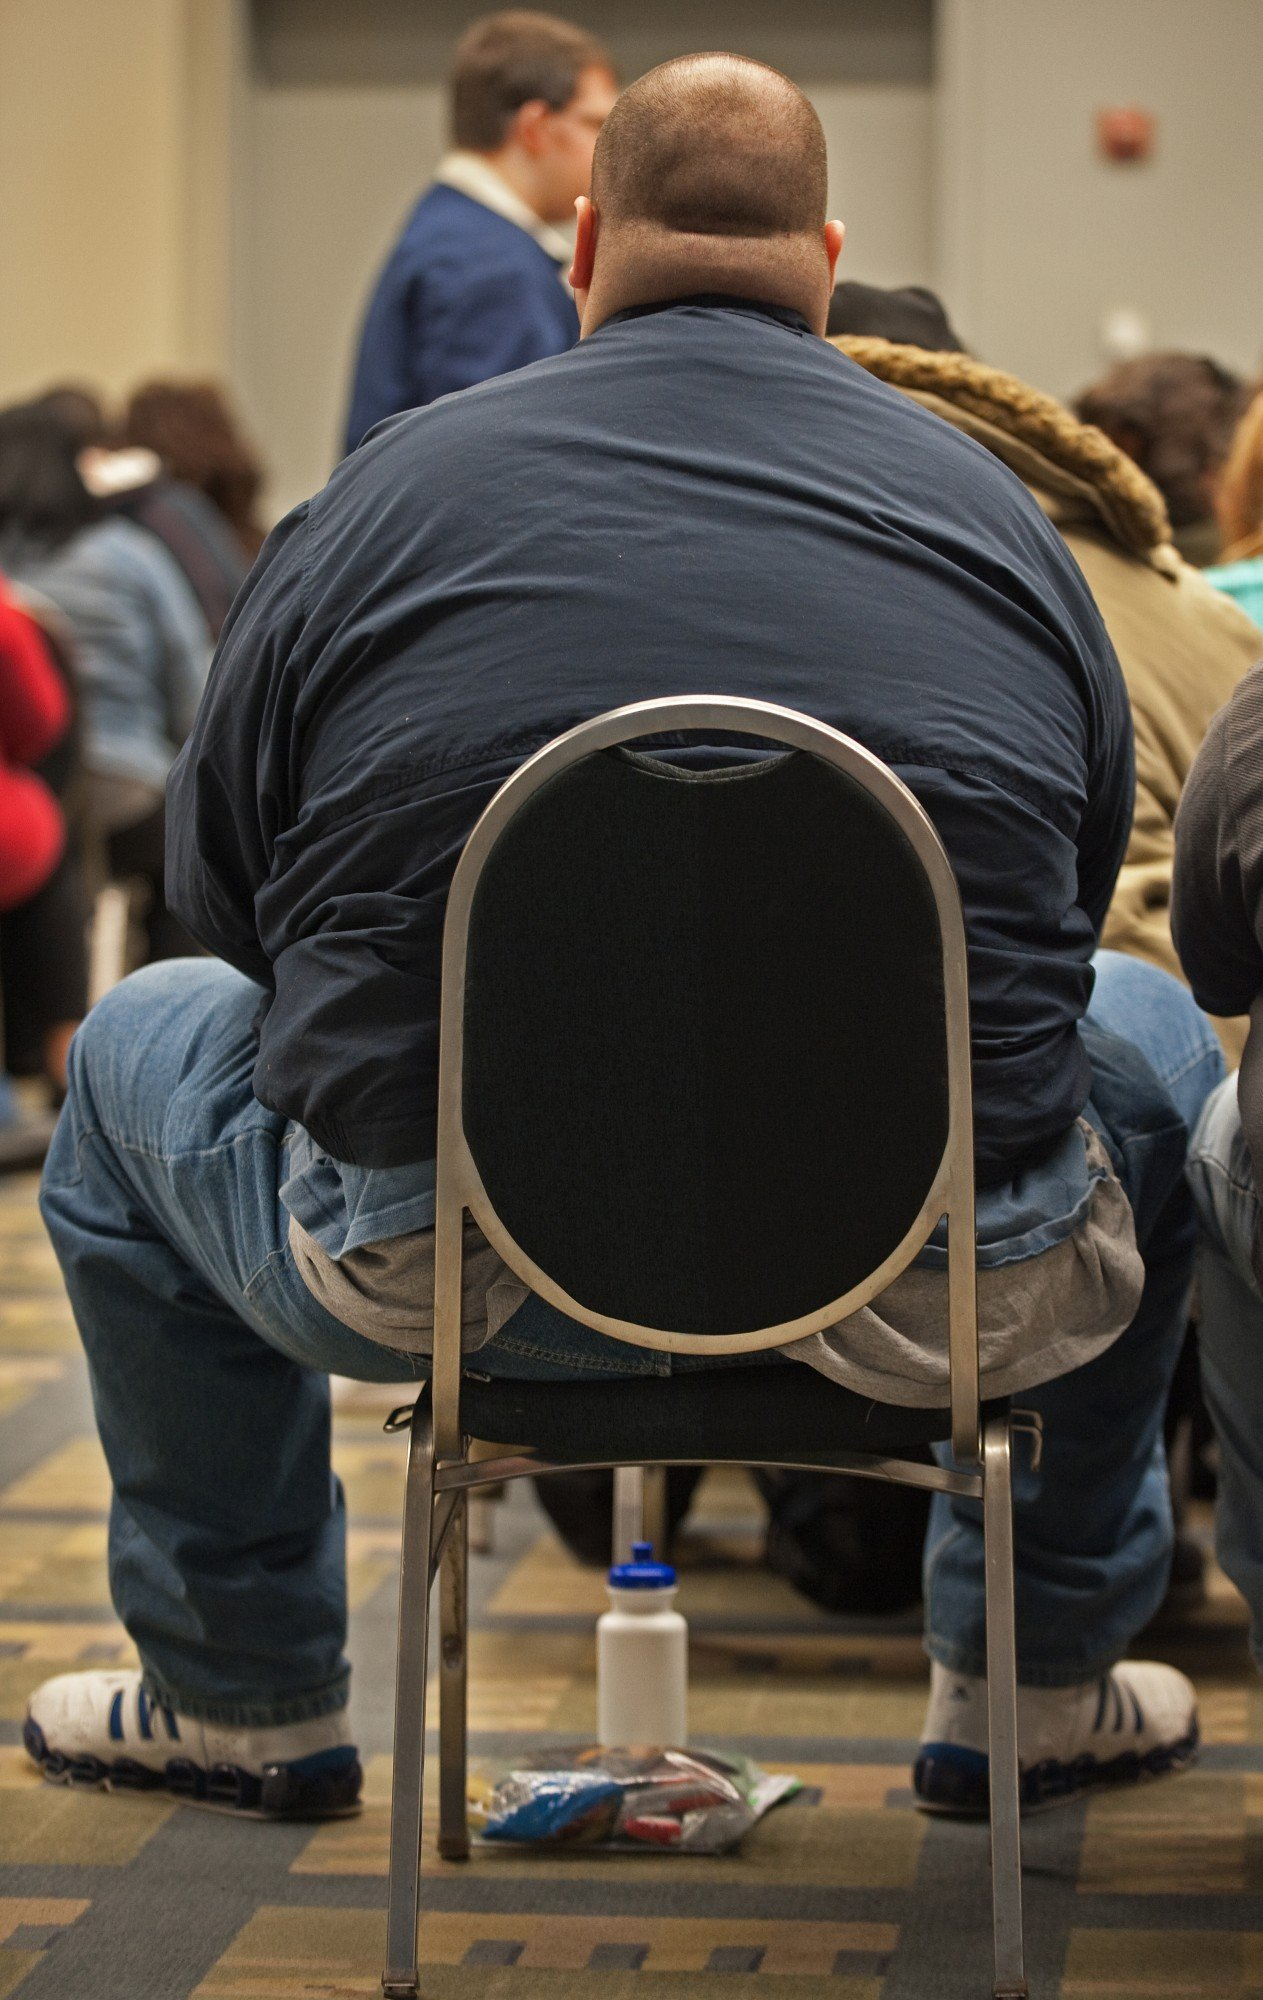 "A potential contestant sits in a waiting room with over 500 people auditioning for the popular TV show, ""The Biggest Loser"", March 6, 2010, inside the Washington Convention Center, in Washington, DC.  ""The Biggest Loser"", where contestants compete to lose weight has become a worldwide hit, airing in over 90 countries and produced in 25 countries. Since its debut in 2004, ""The Biggest Loser"" has grown to become a standalone health and lifestyle brand with tools and products inspired by the show and approved by its doctors and experts.    AFP Photo/Paul J. Richards (Photo credit should read PAUL J. RICHARDS/AFP/Getty Images)"